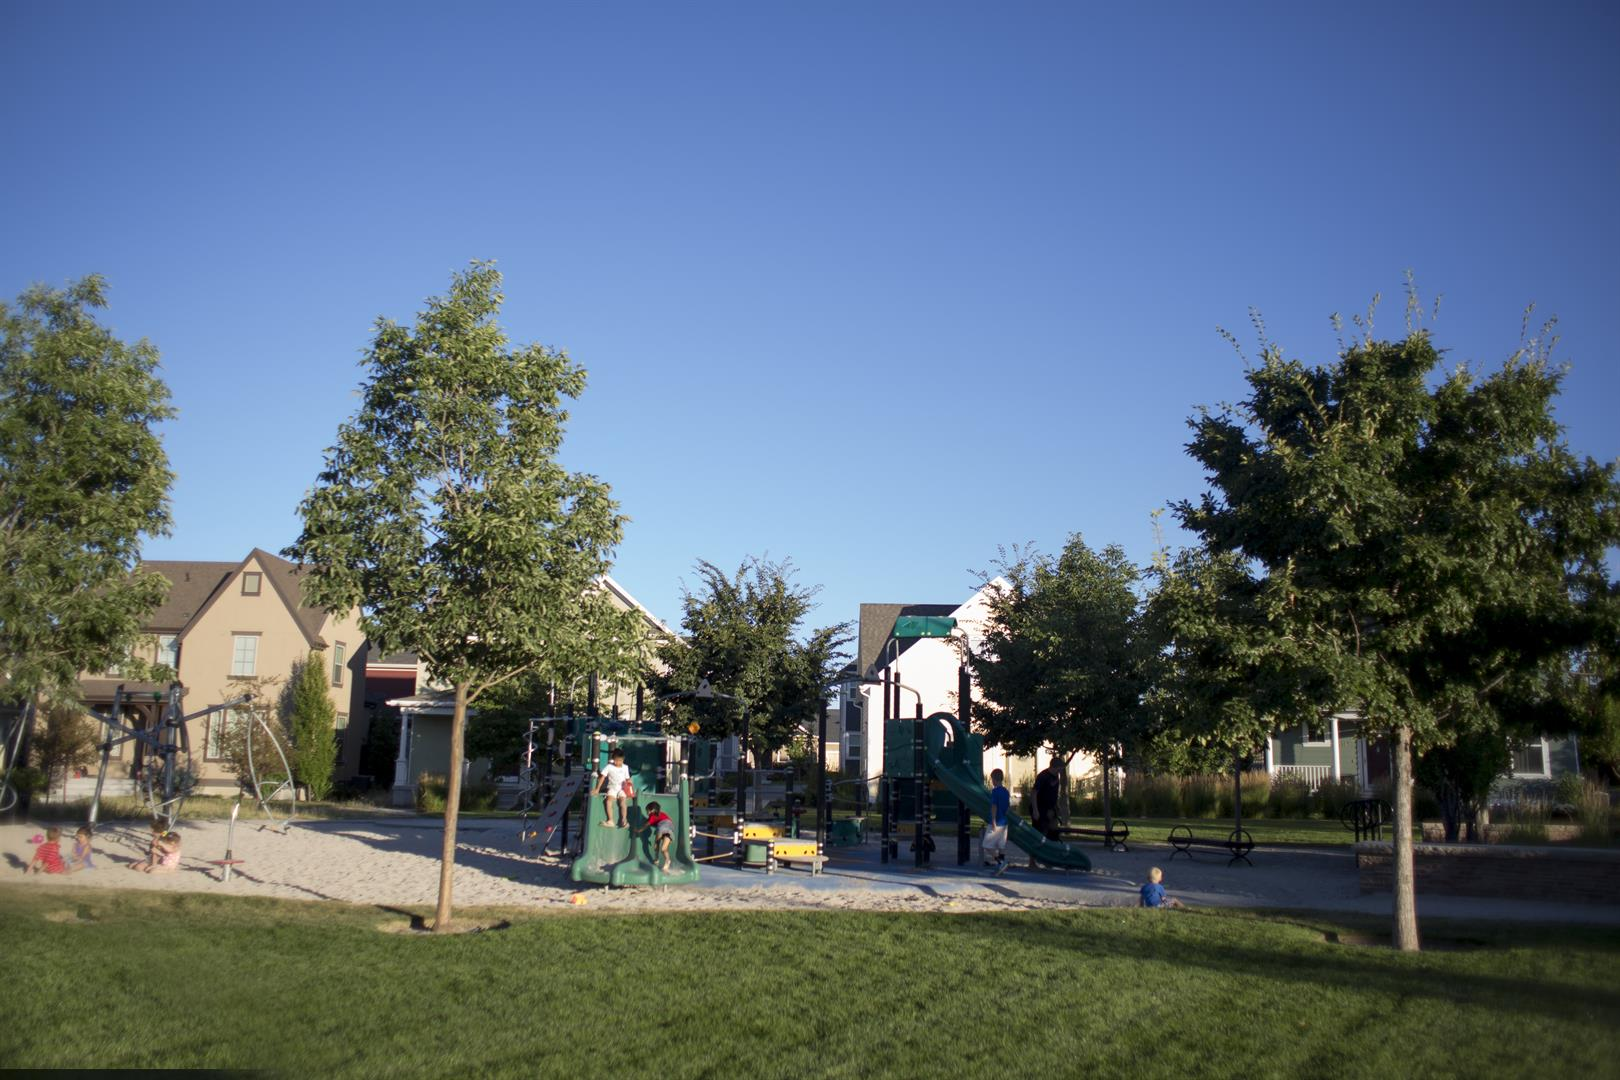 orchard park play equipment